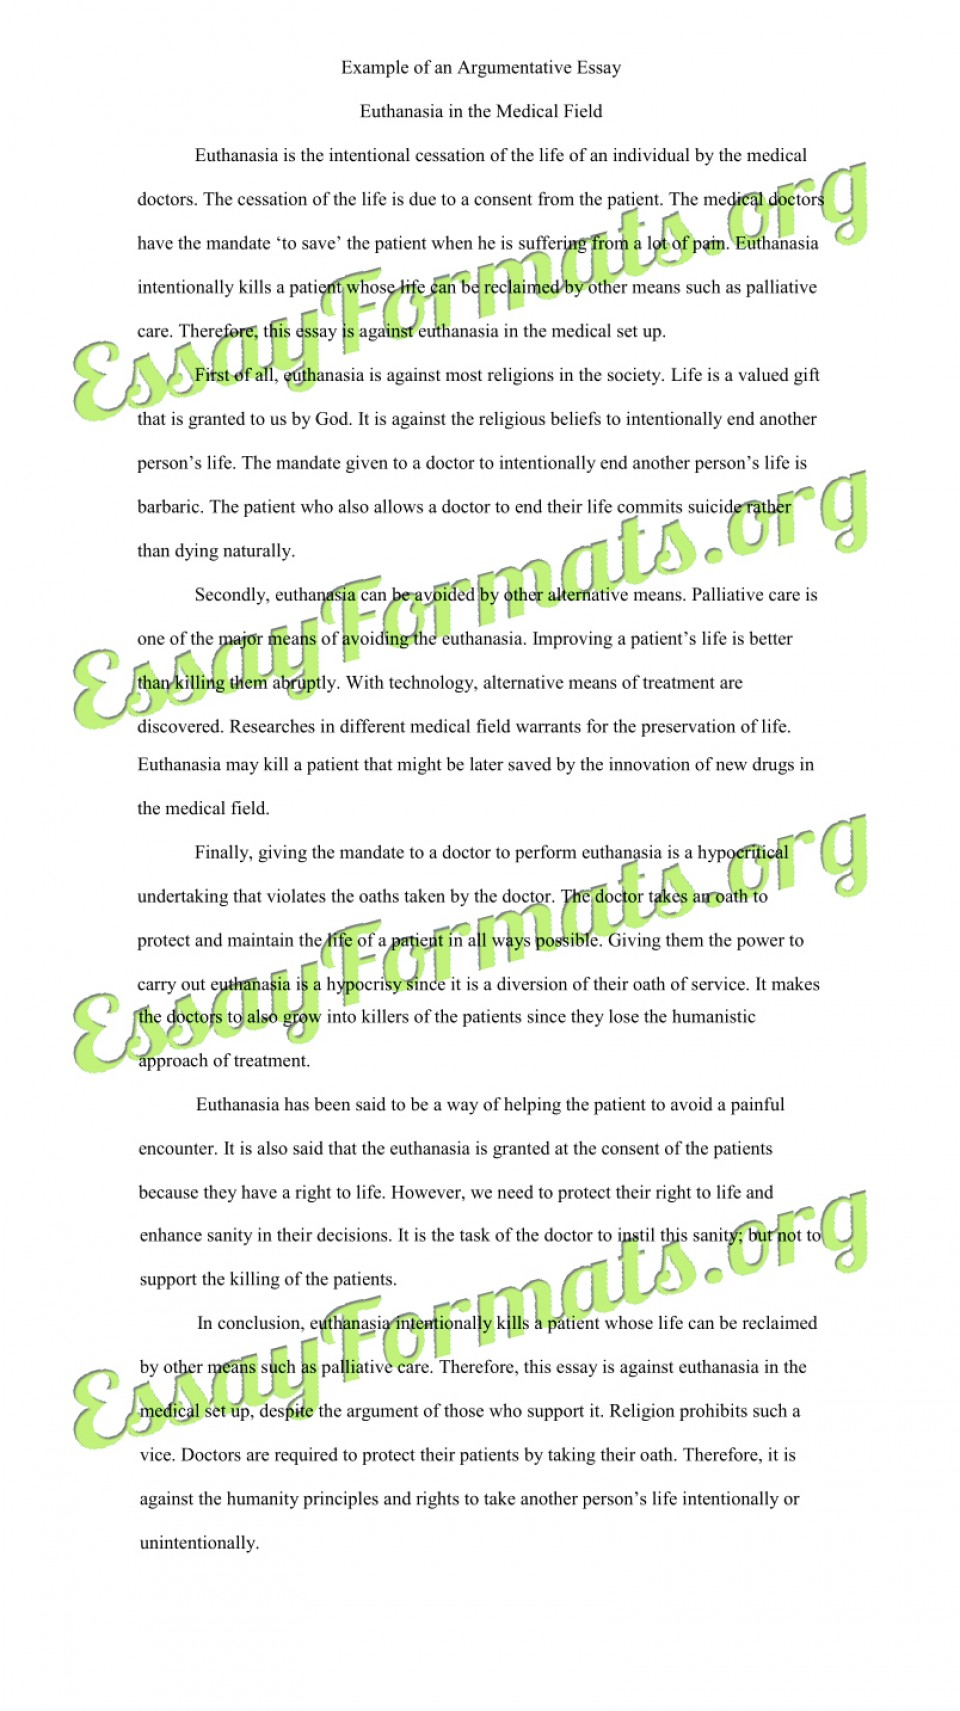 005 Essay Example Euthanasia Argumentative Counter Argument Persuasive Examples L Stirring Outline Conclusion Pdf 960